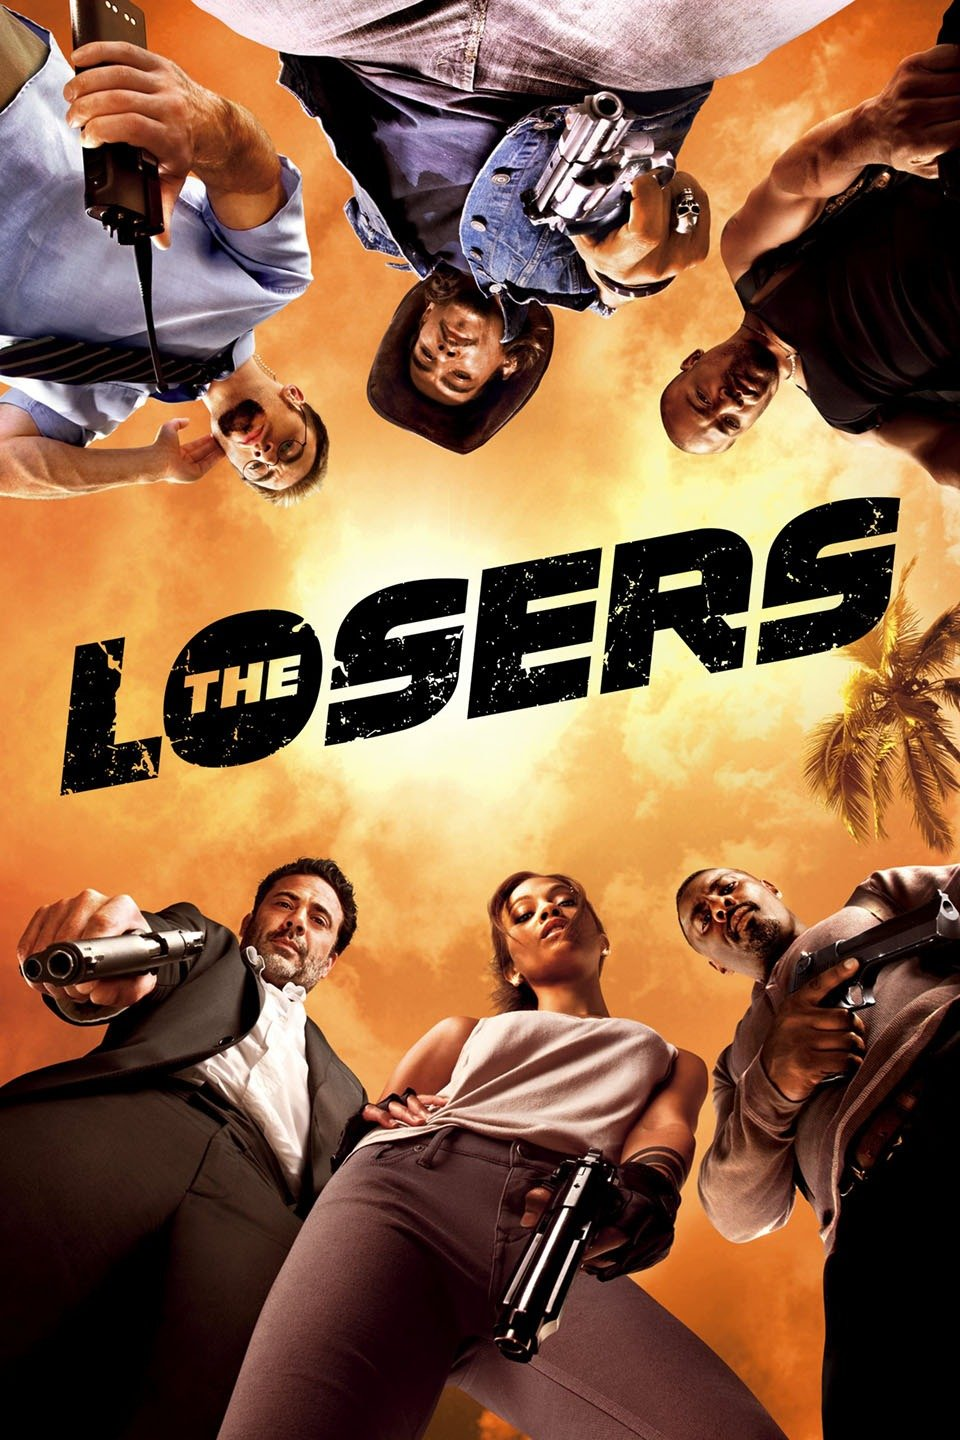 The Losers (2010) 720p BRRip Dual Audio [ HIN -ENG ] Eng Sub x264